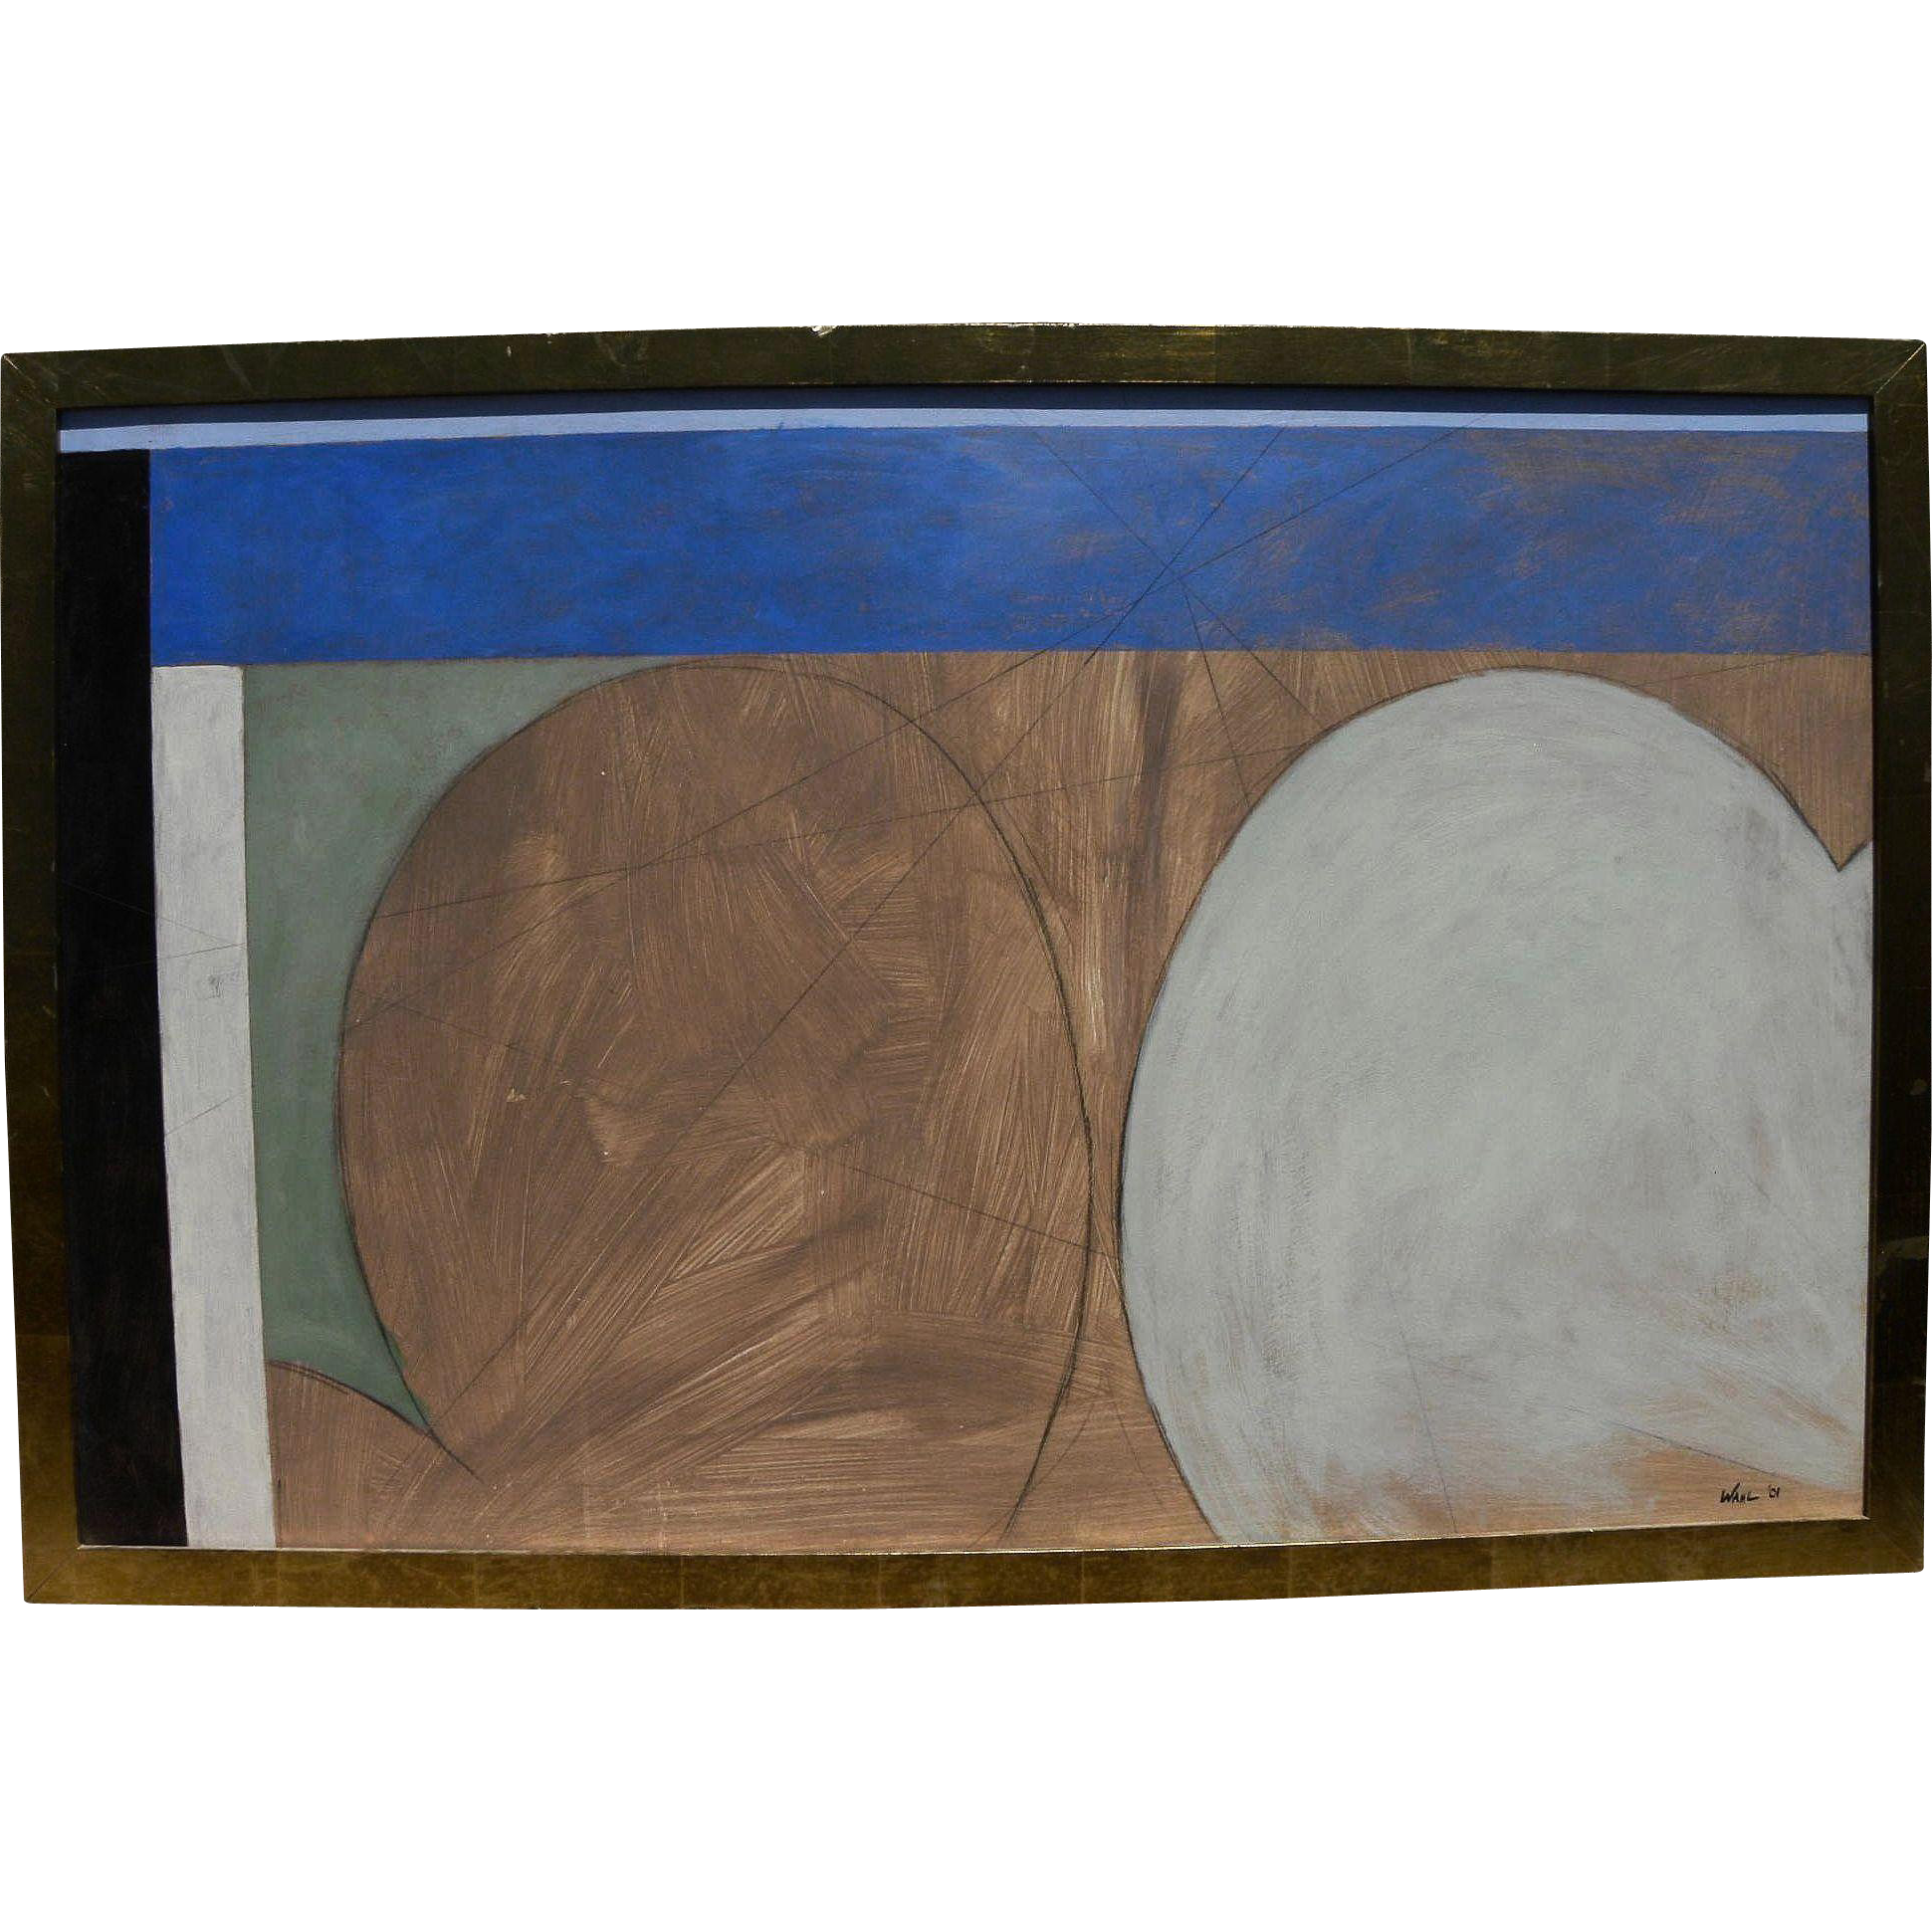 Striking large contemporary abstract painting signed WAHL dated 2001